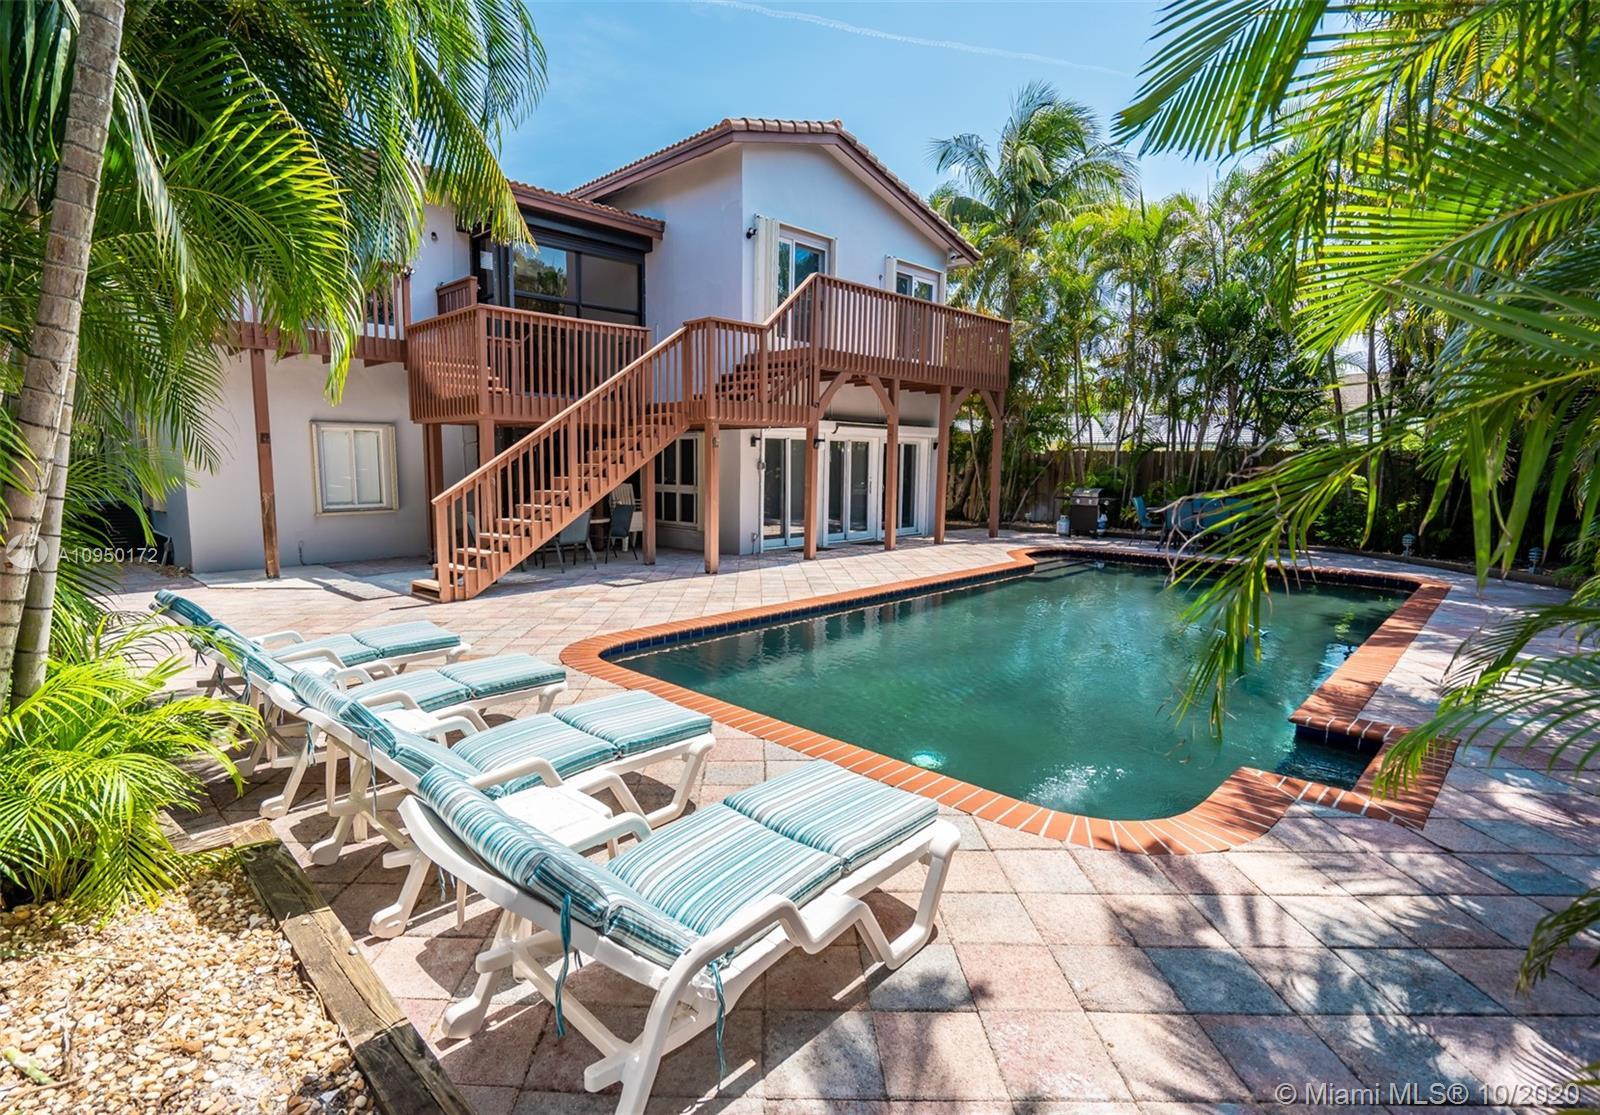 Details for 267 Avalon Ave, Lauderdale By The Sea, FL 33308